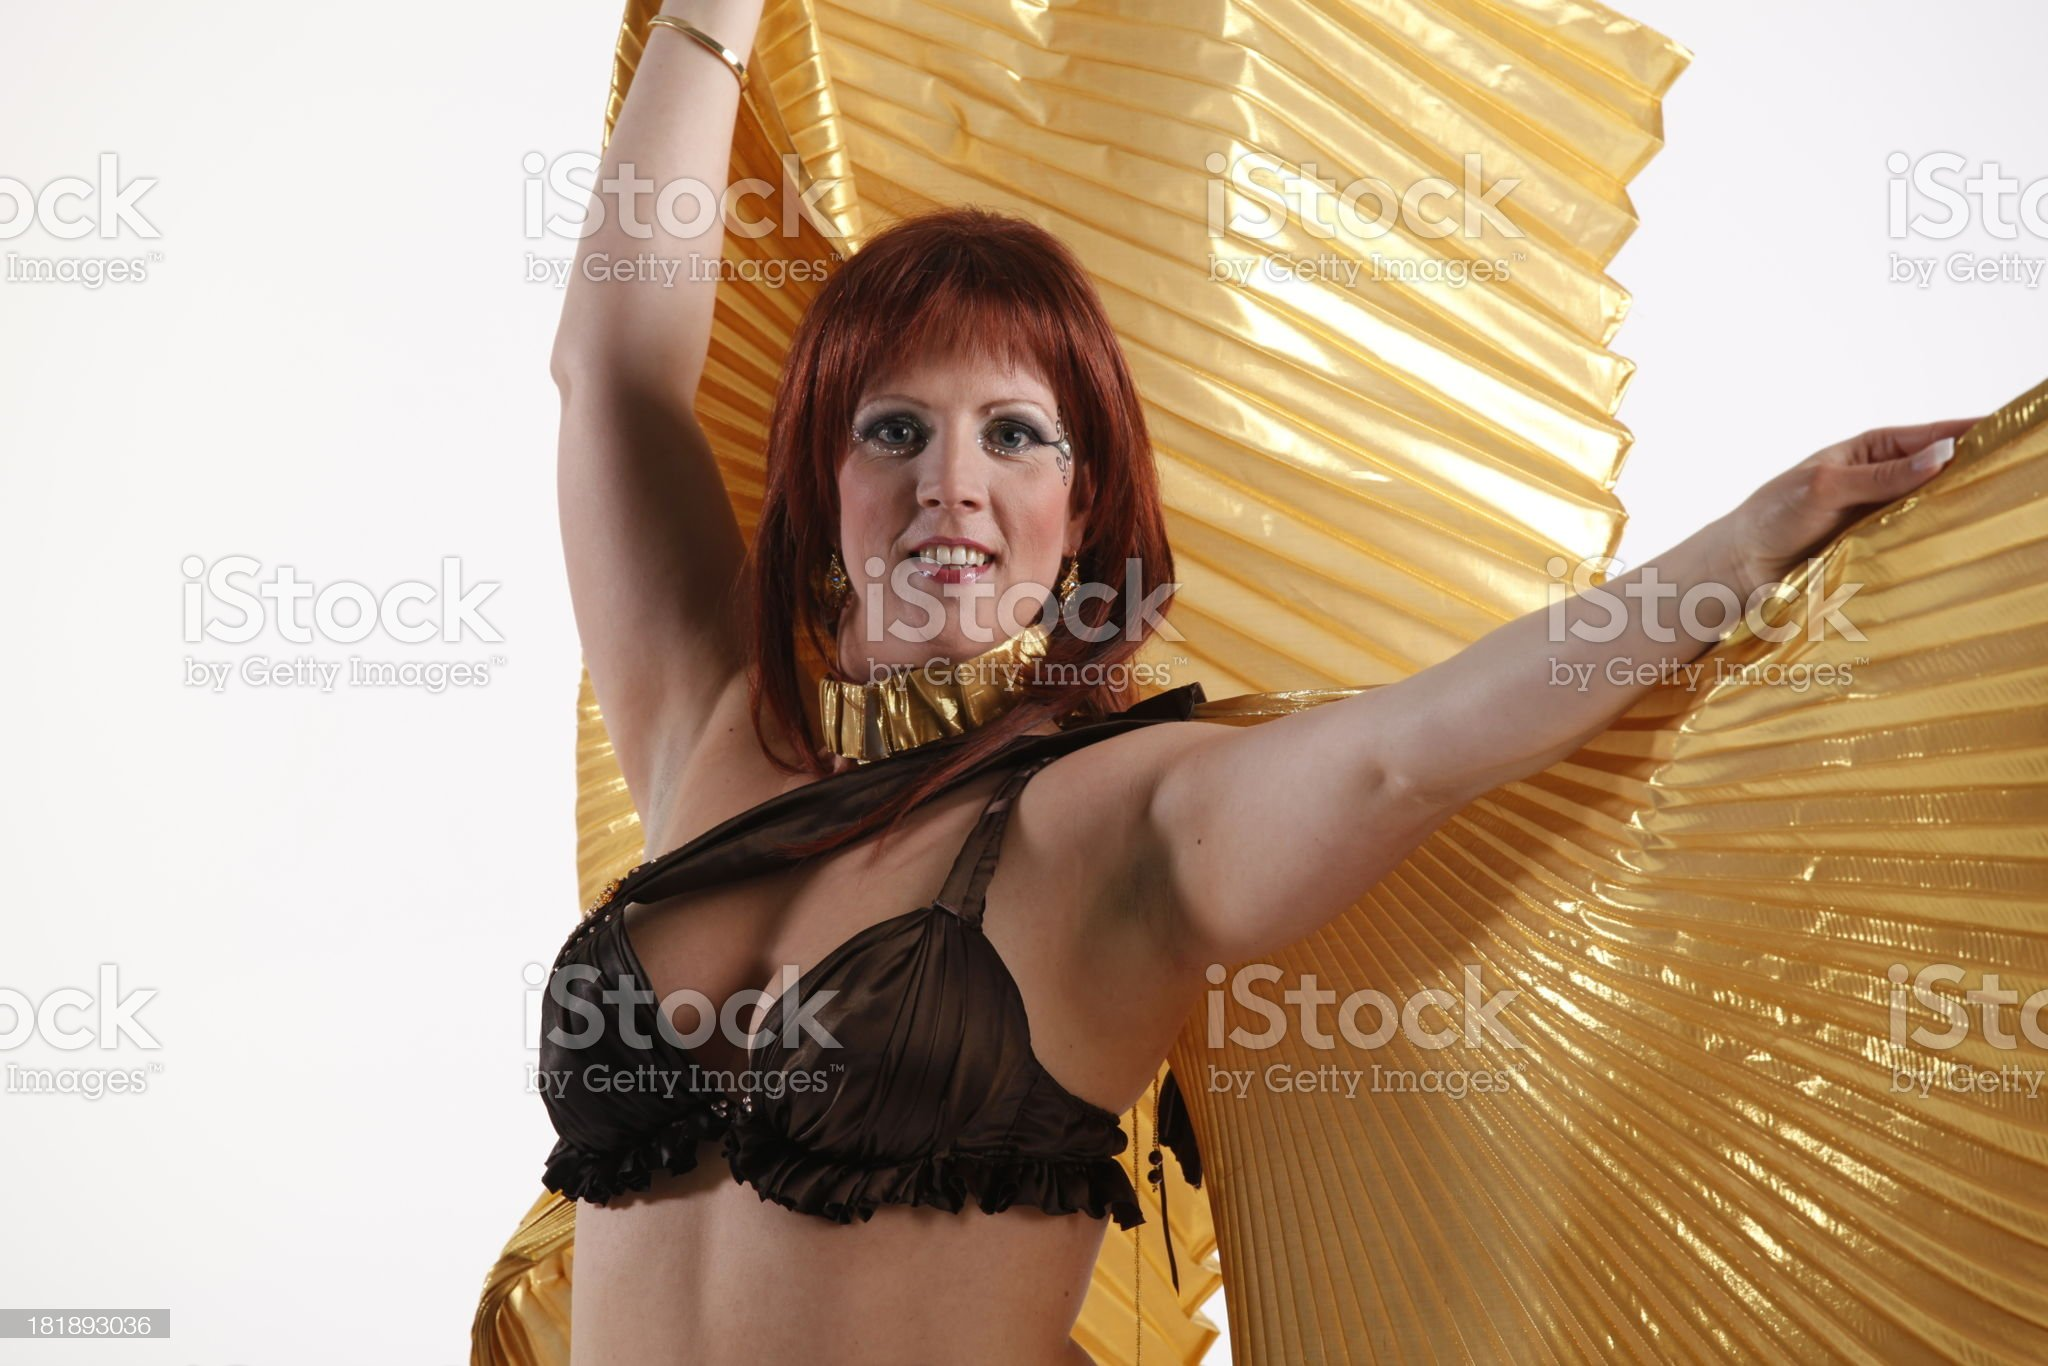 Belly dancer in pose royalty-free stock photo